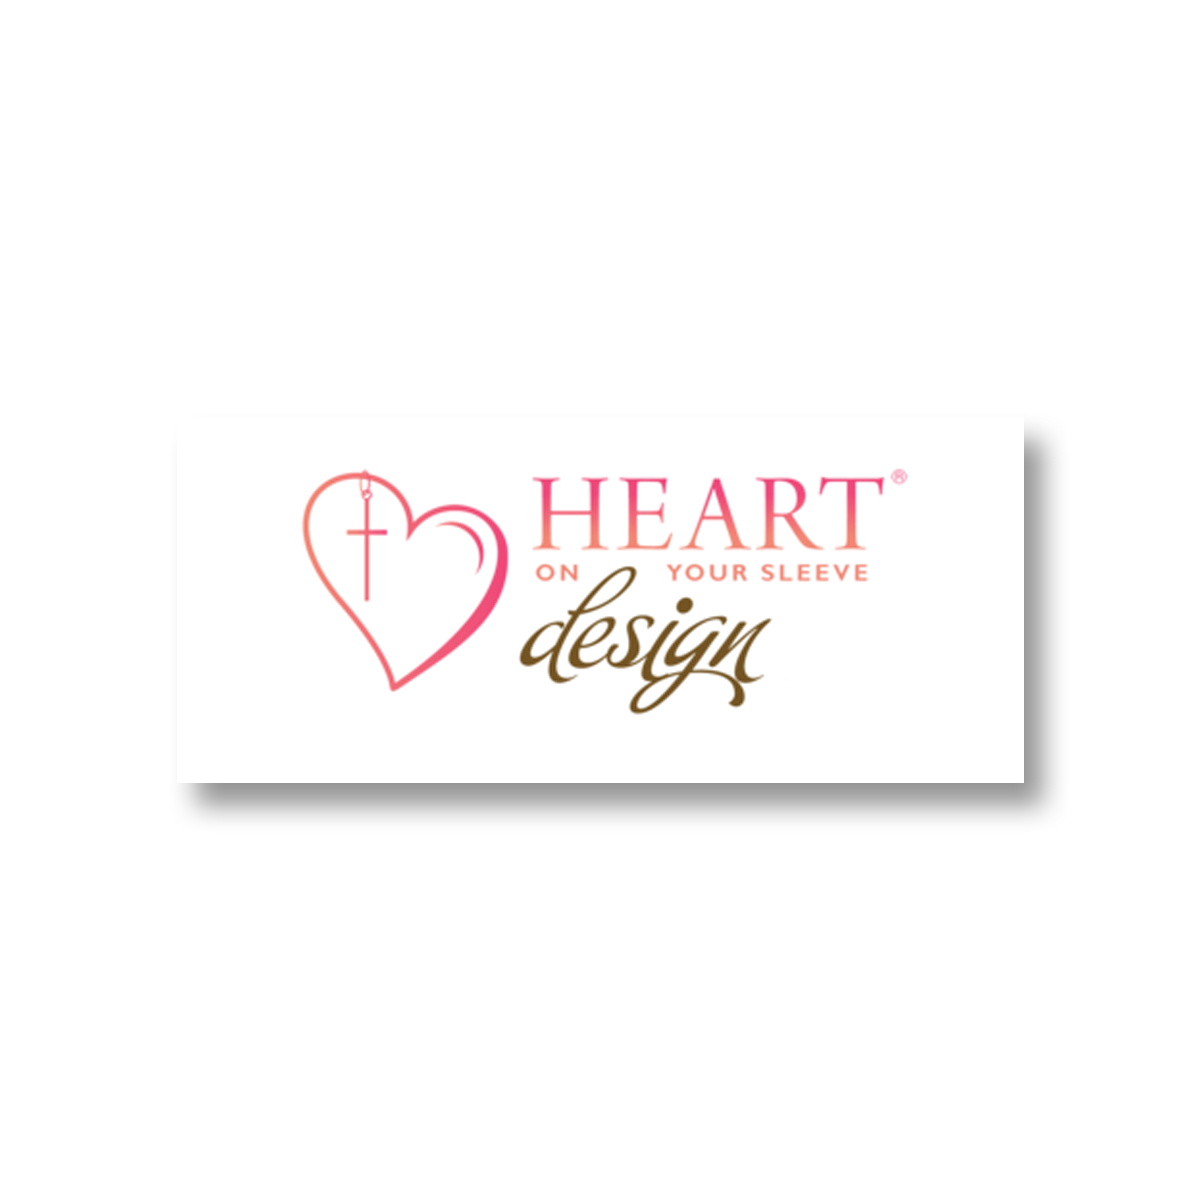 Heart On Your Sleeve Designs Commercial Branded Product Photography